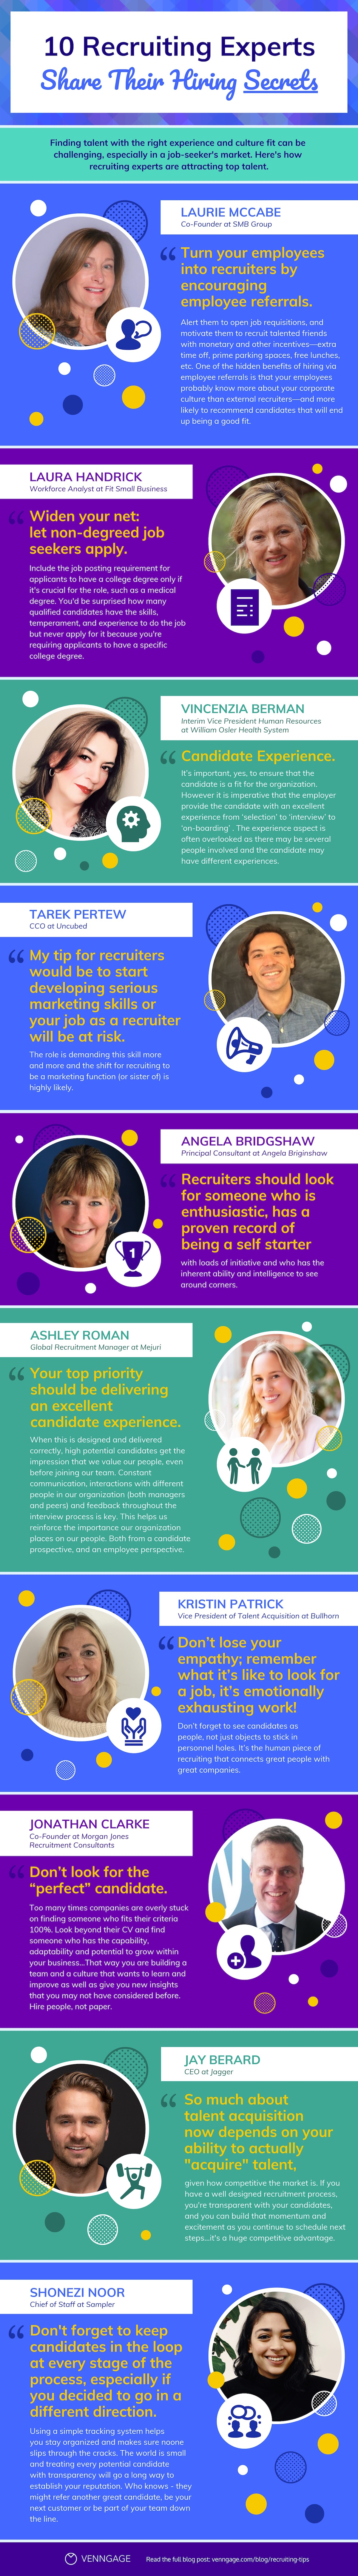 HR Influencers Quotes + Recruiting Tips